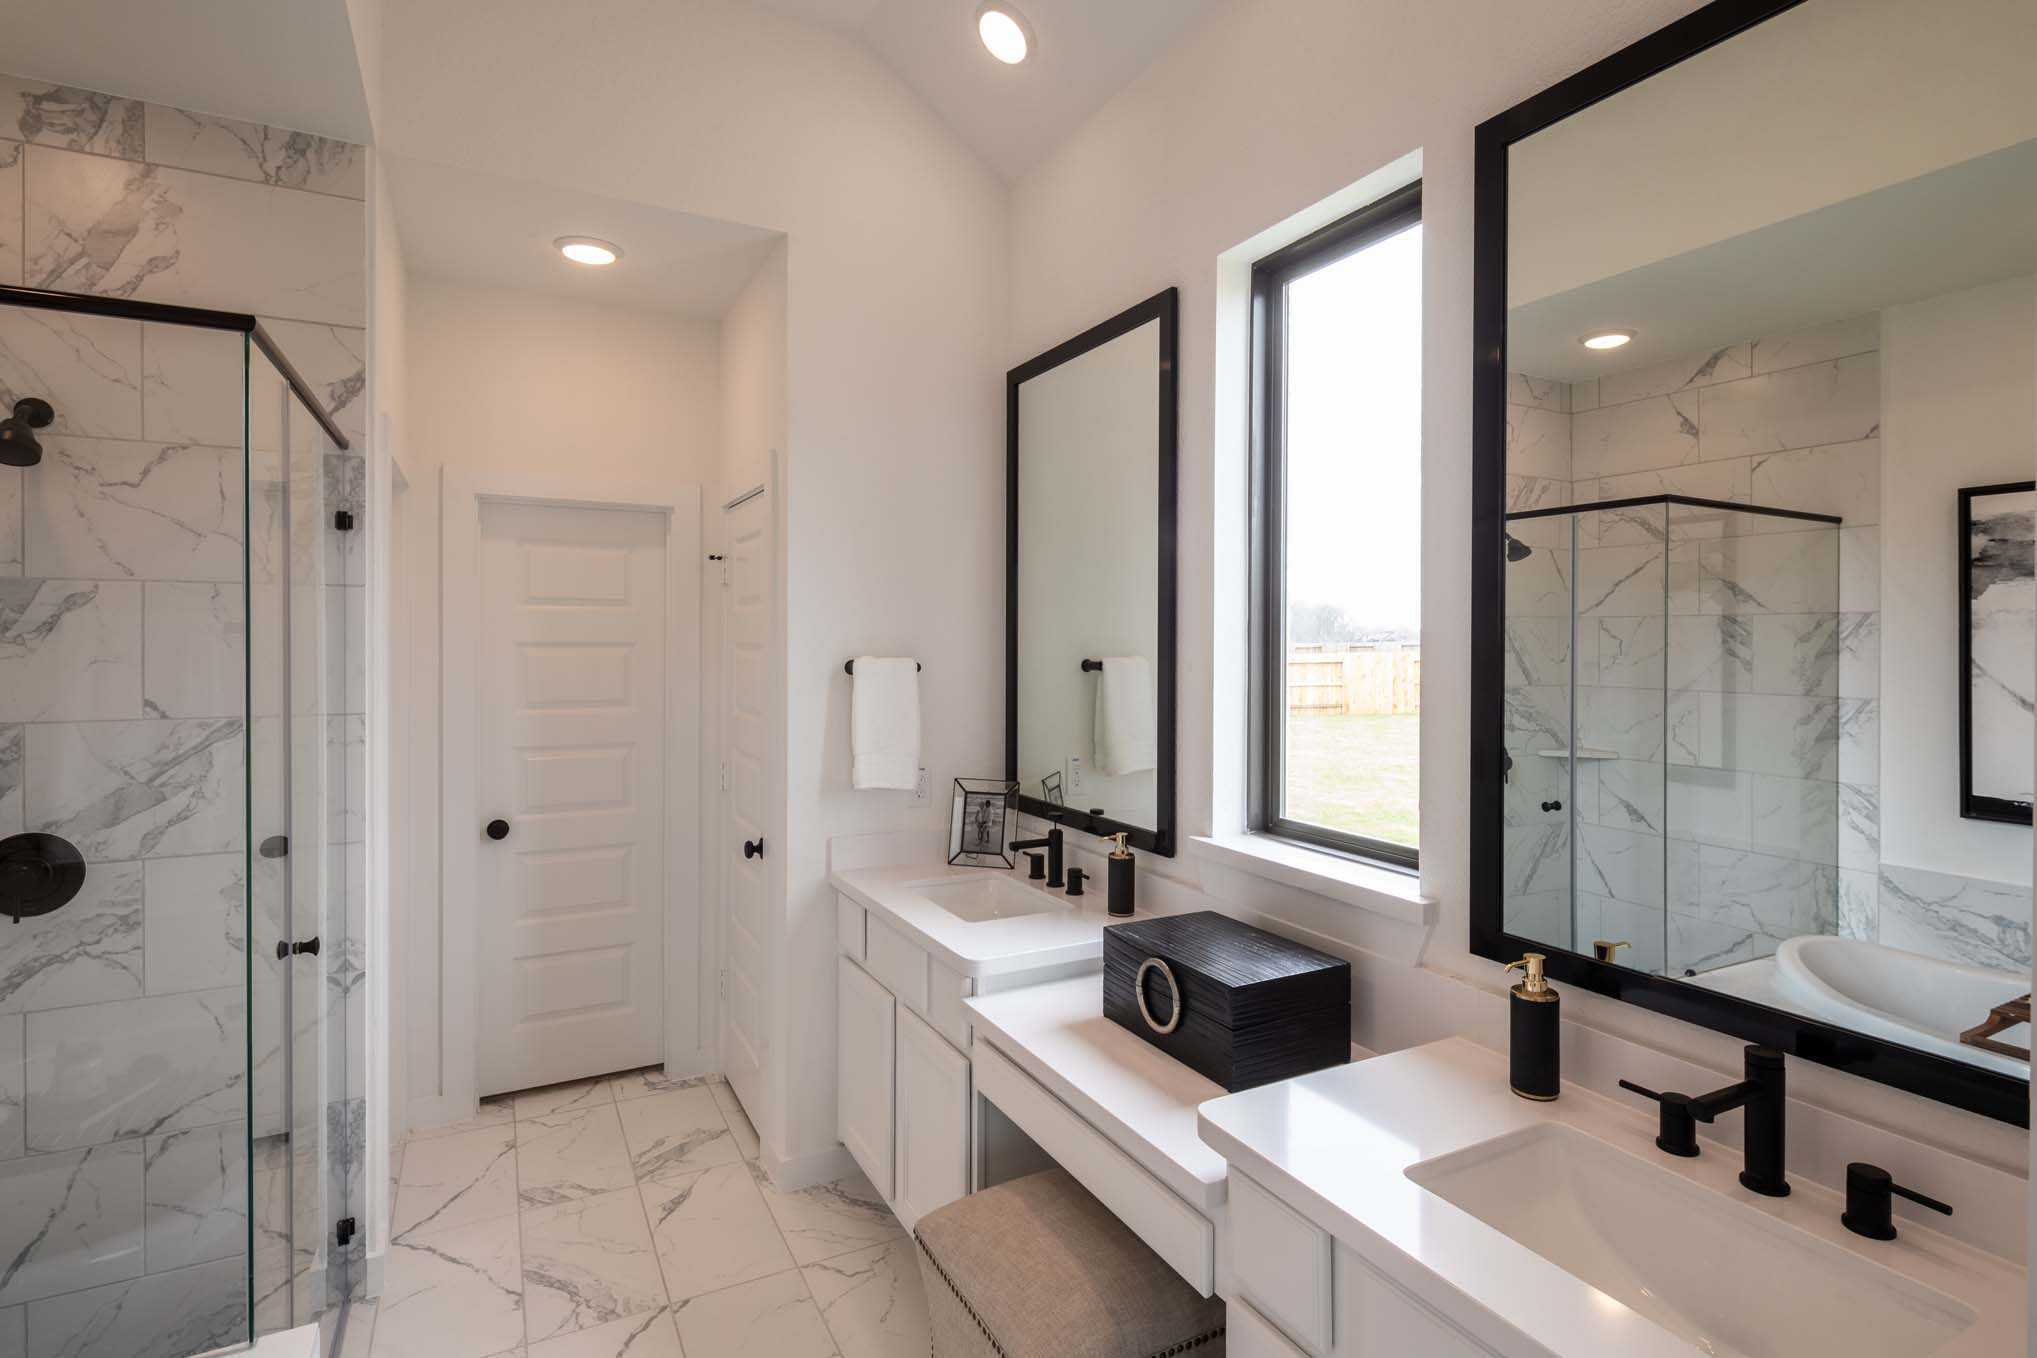 Bathroom featured in the Plan Davenport By Highland Homes in San Antonio, TX